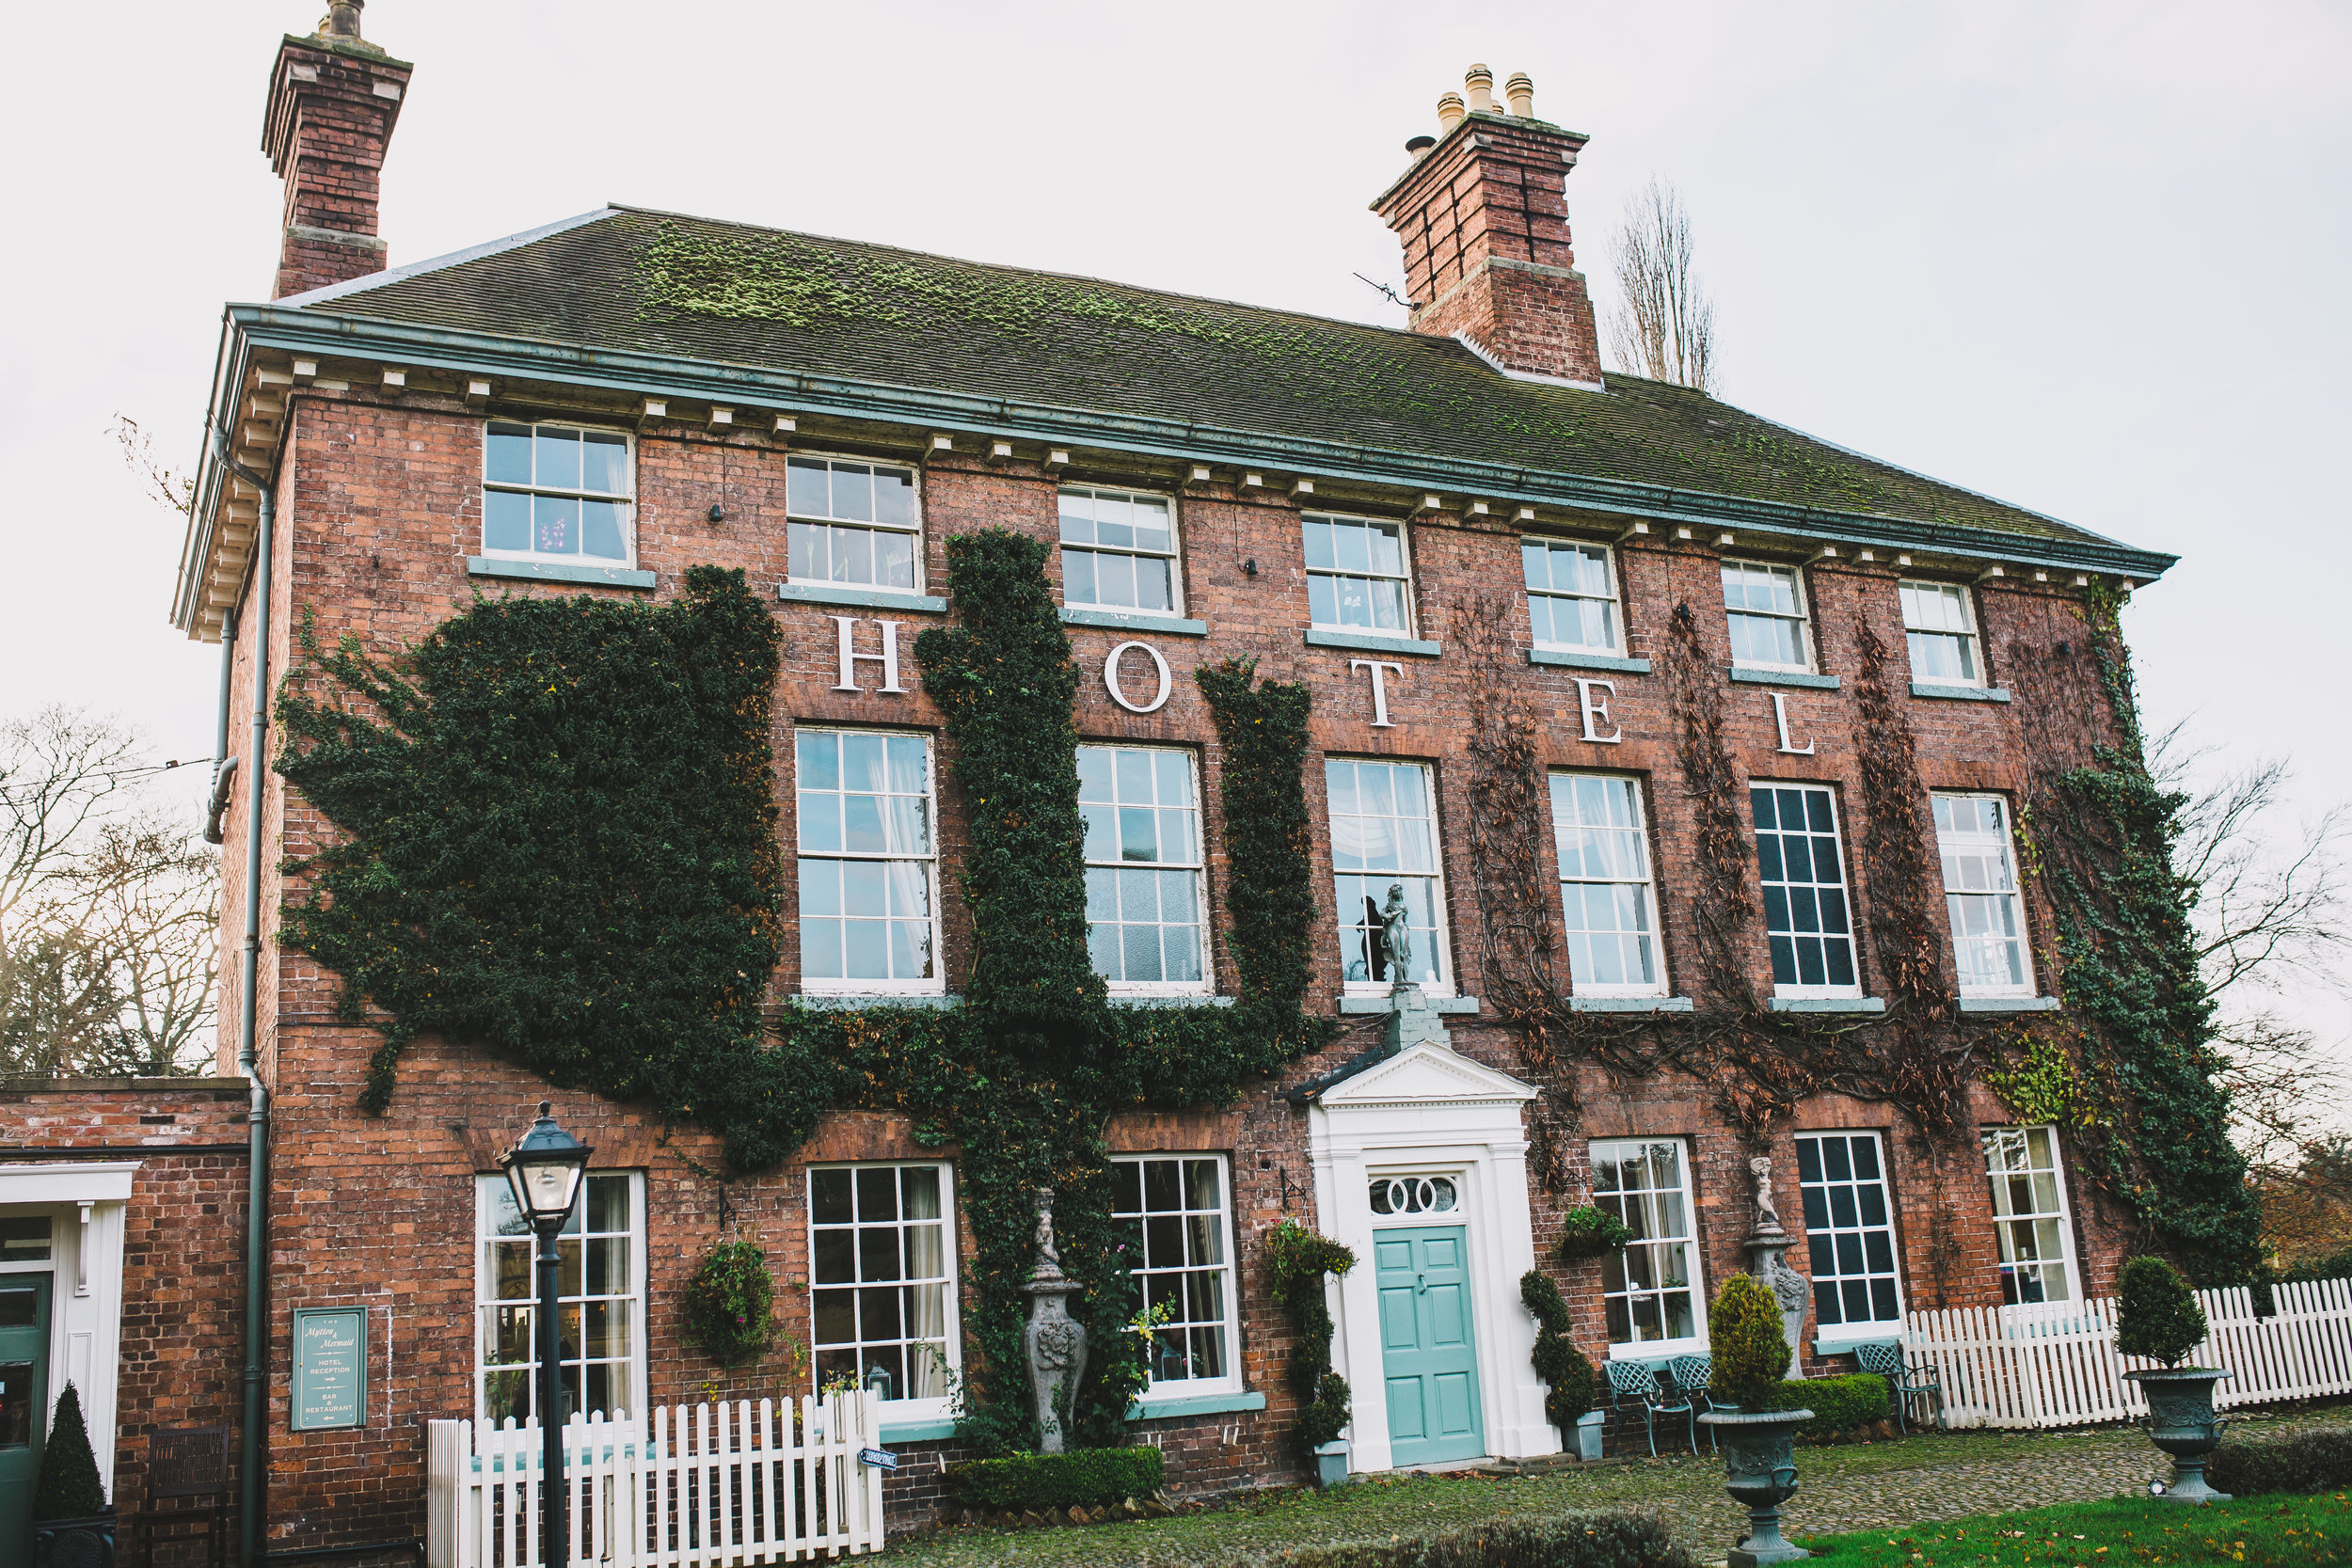 exterior of Mytton and Mermaid hotel